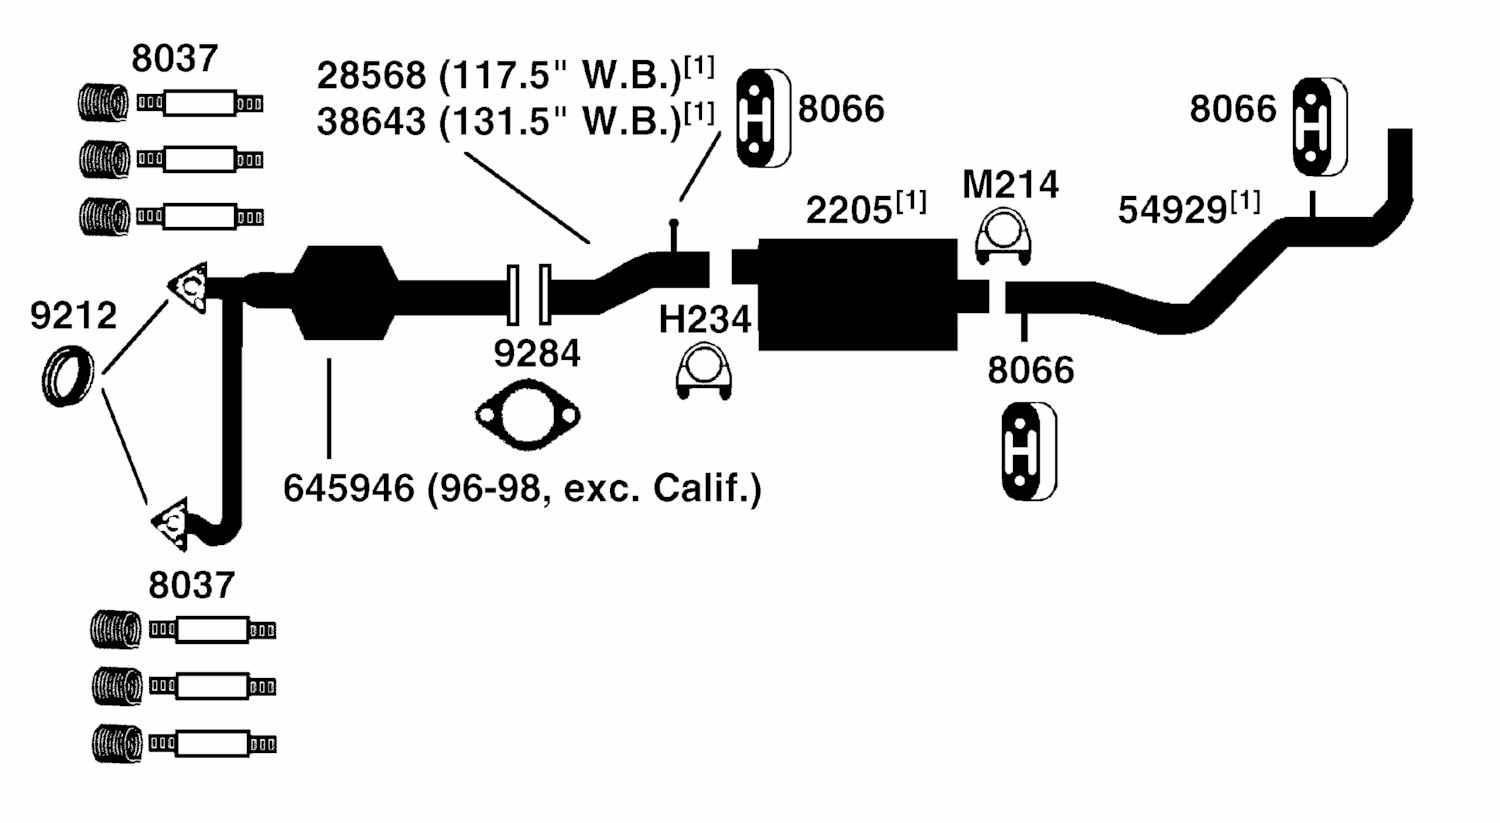 2000 Chevy Impala Exhaust System Diagram on fuse box for ford focus 2006